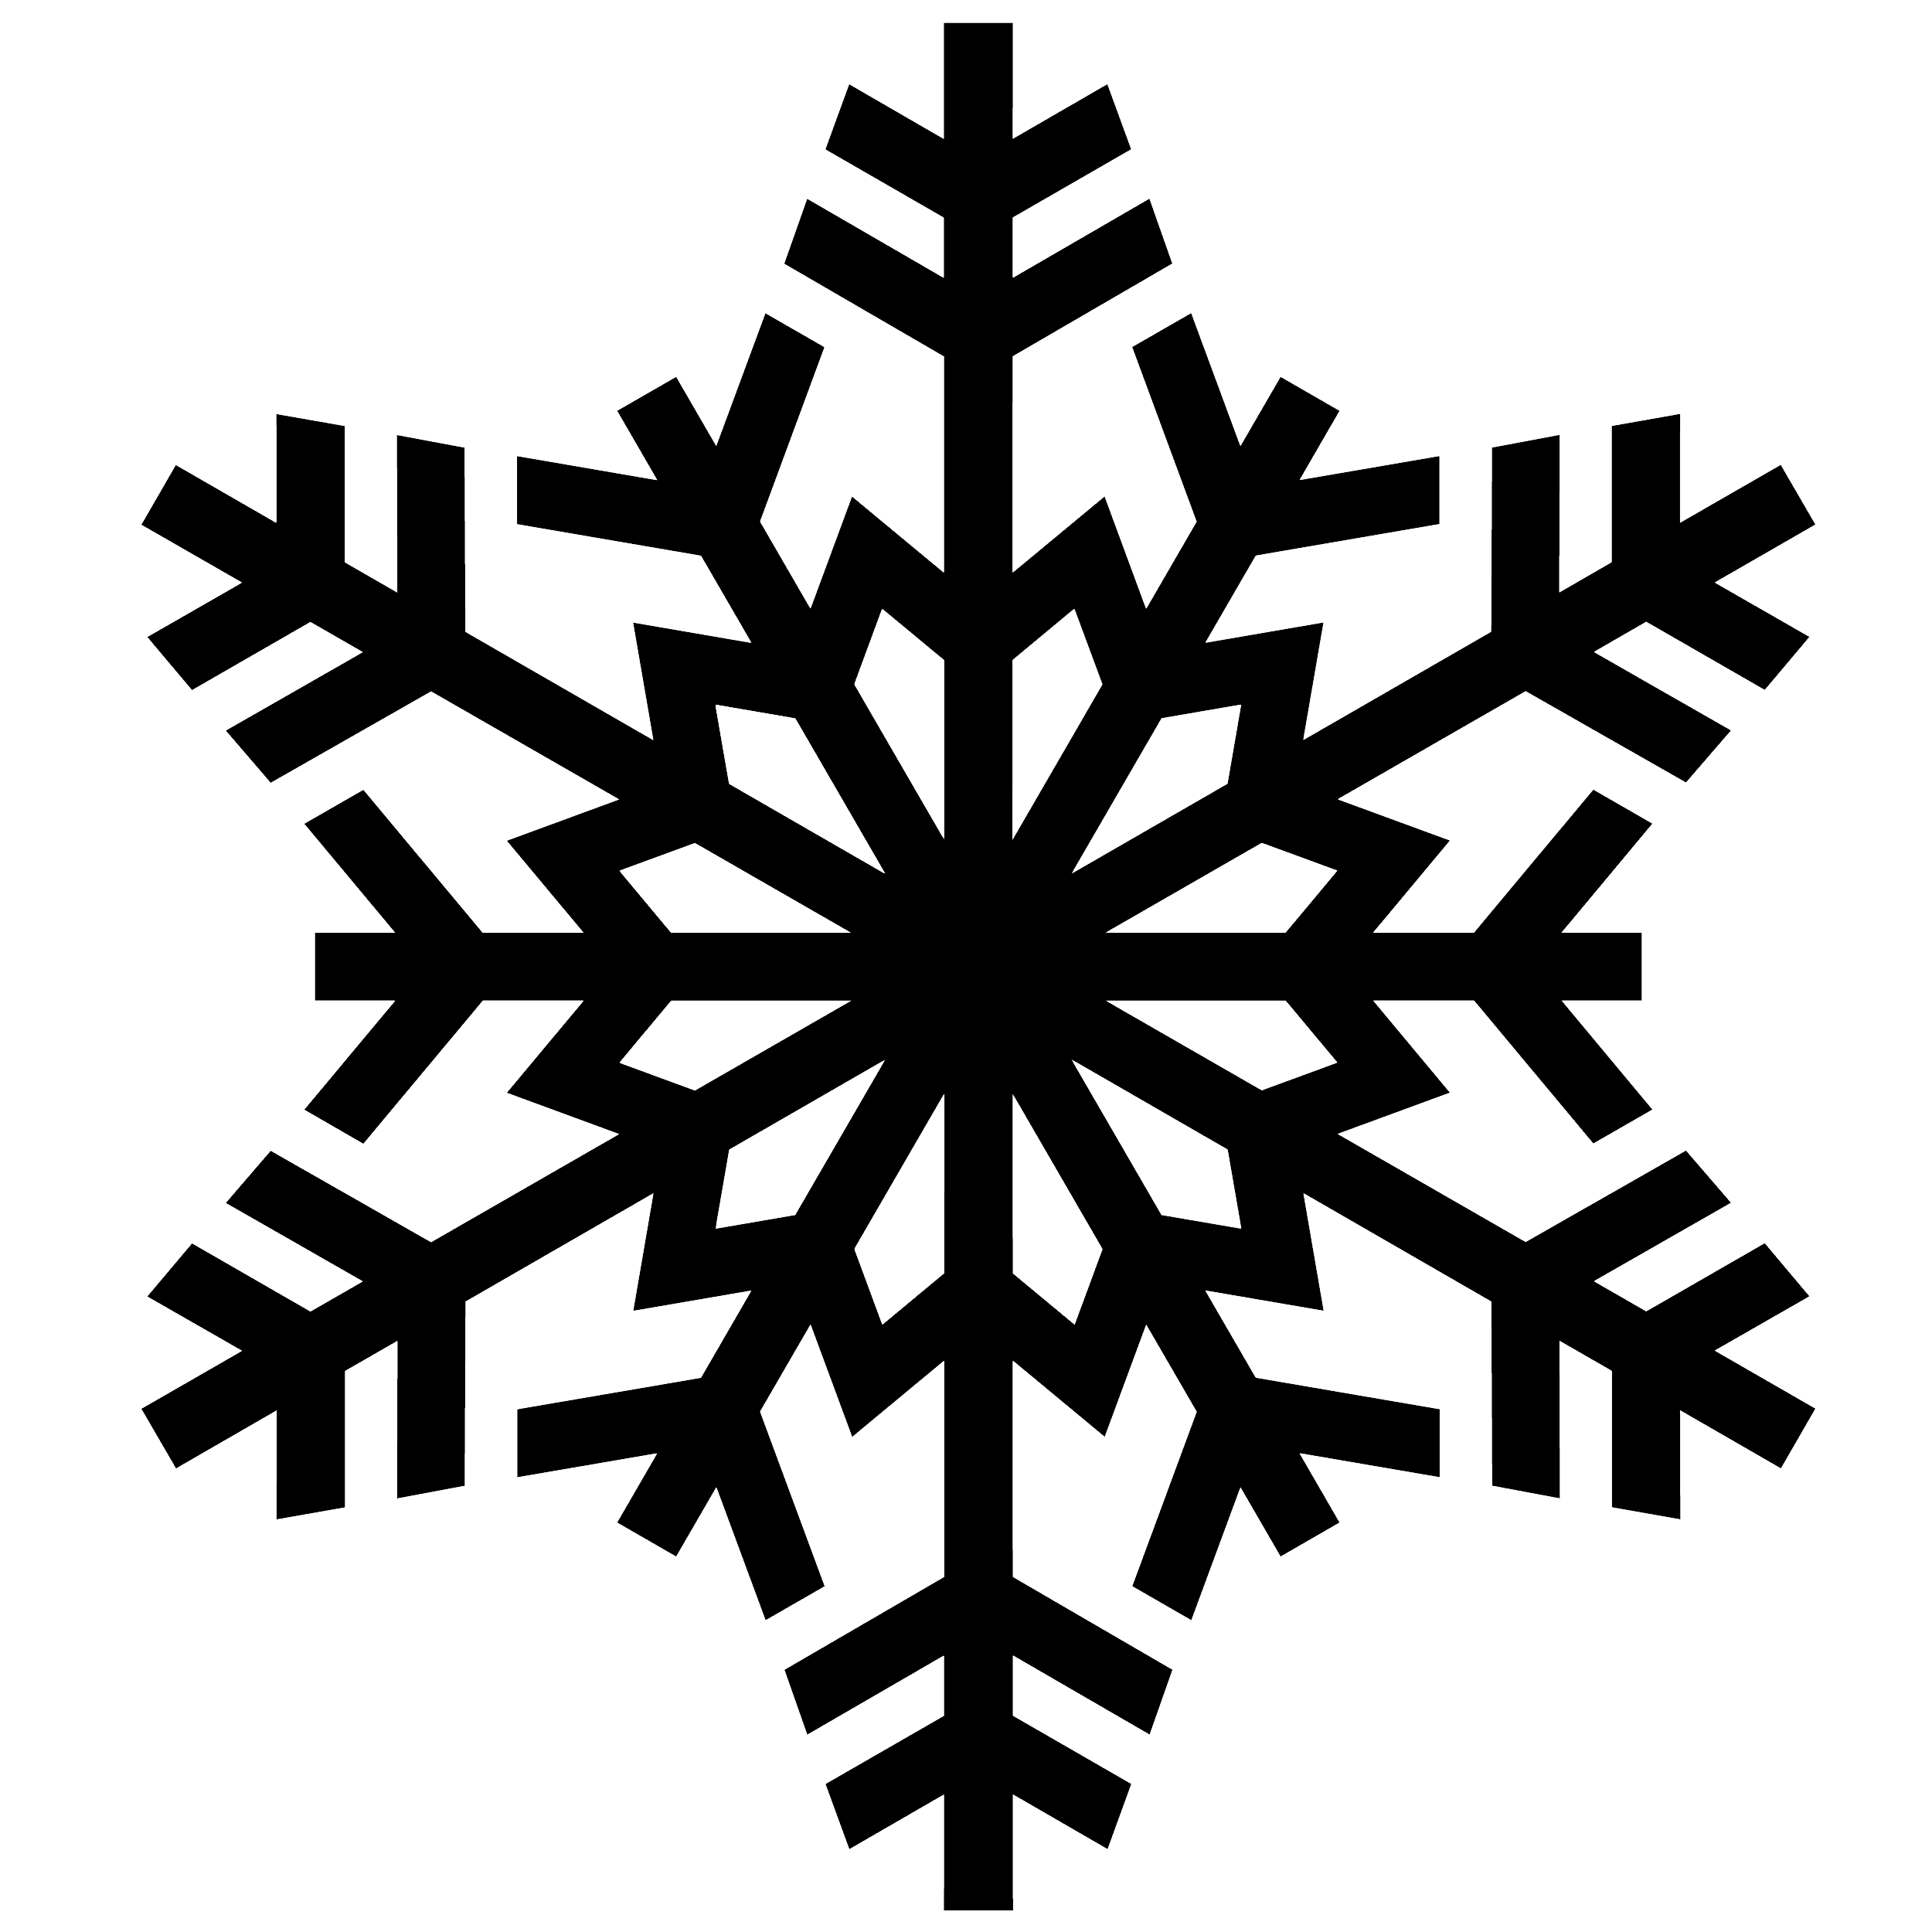 Snowflake vector png. Acur lunamedia co